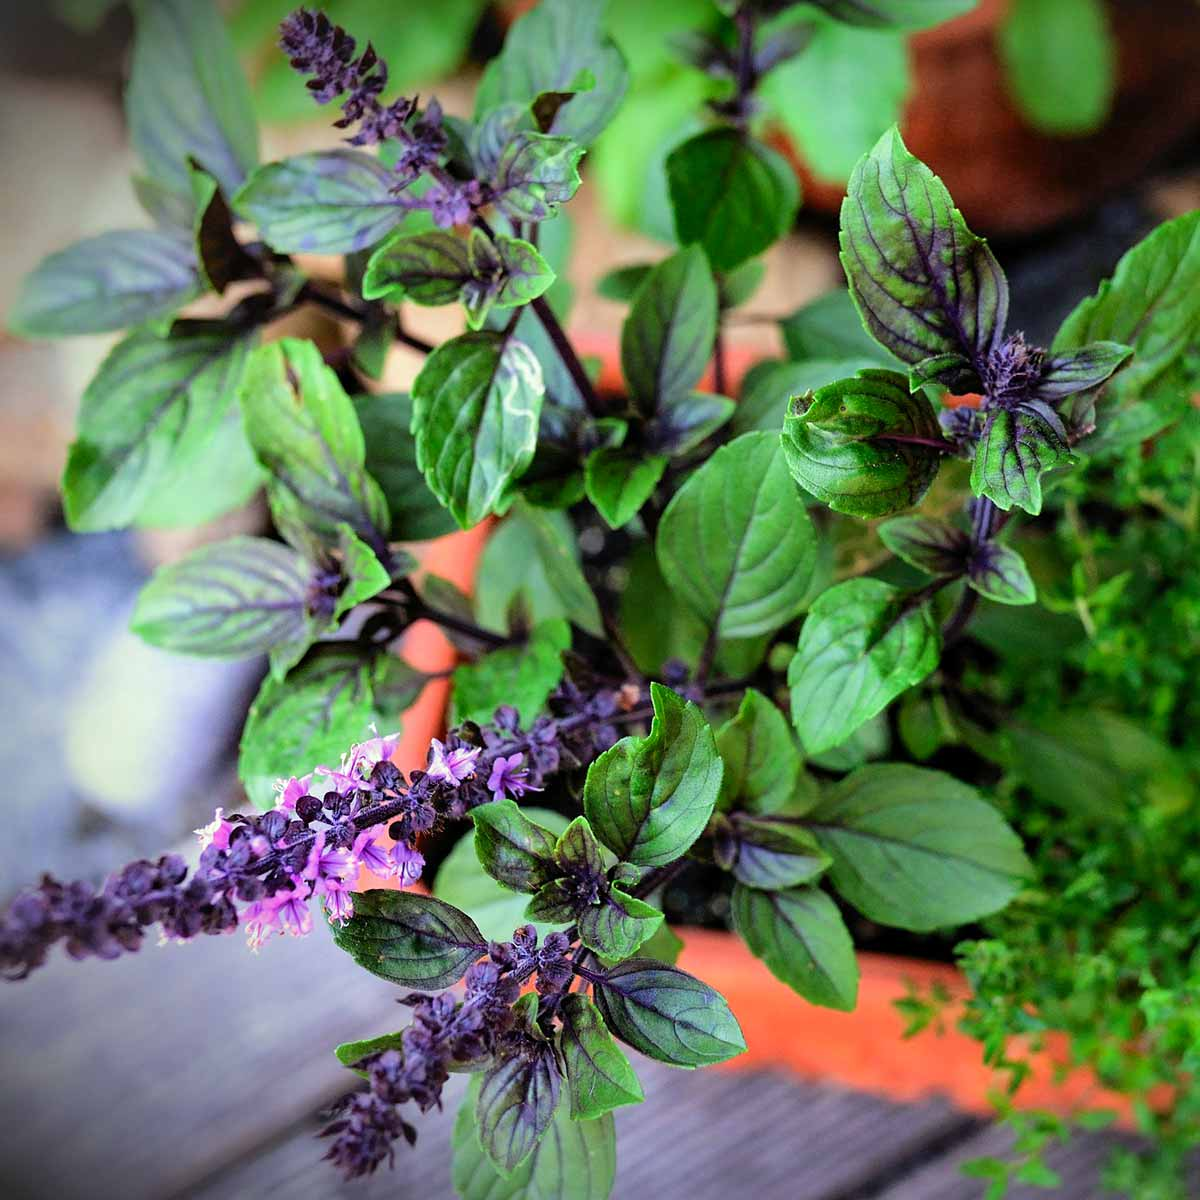 Basil plant with purple flowers